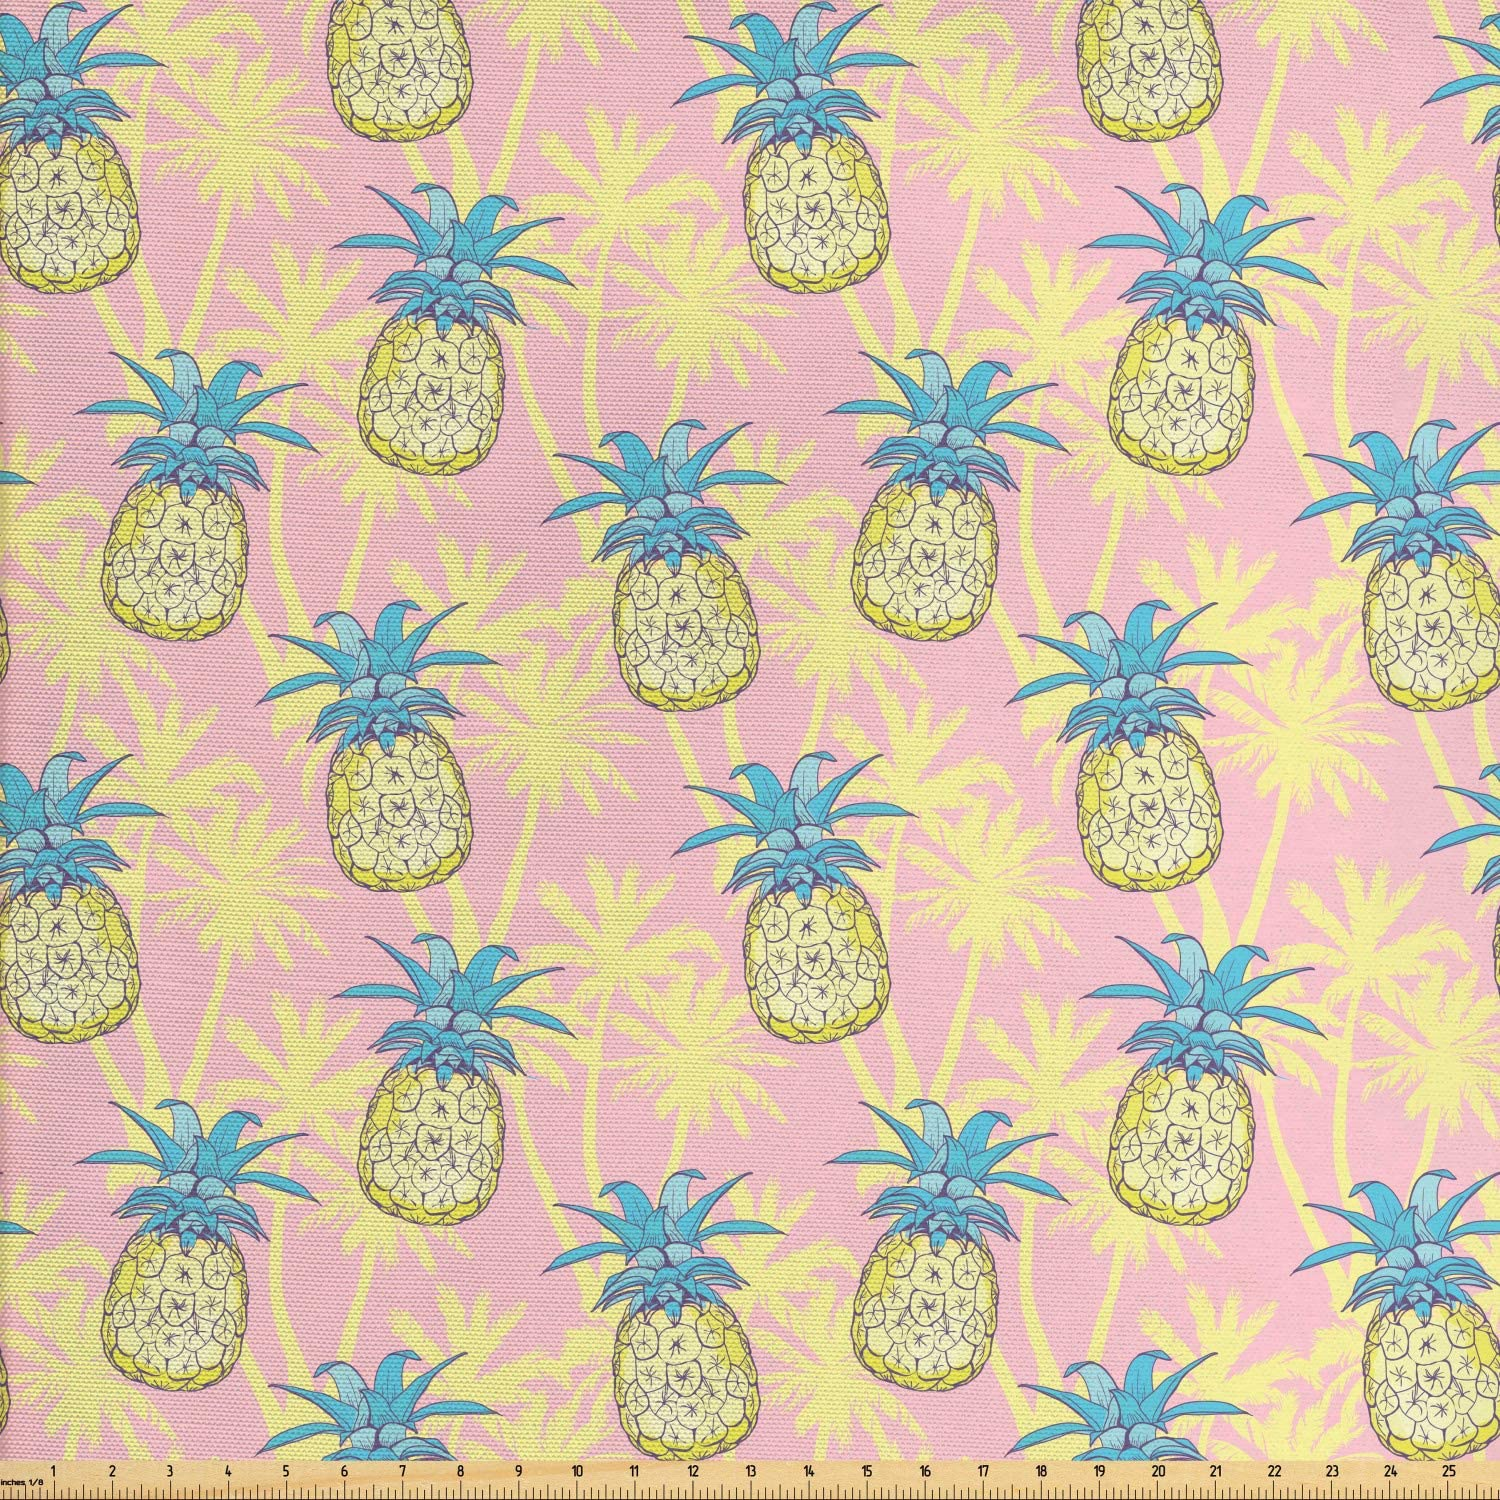 Ambesonne Hawaiian Fabric by The Yard, Pastel Rhythmic Pineapples Pattern on Palm Tree Silhouette Background, Decorative Fabric for Upholstery and Home Accents, 1 Yard, Rose and Pale Yellow